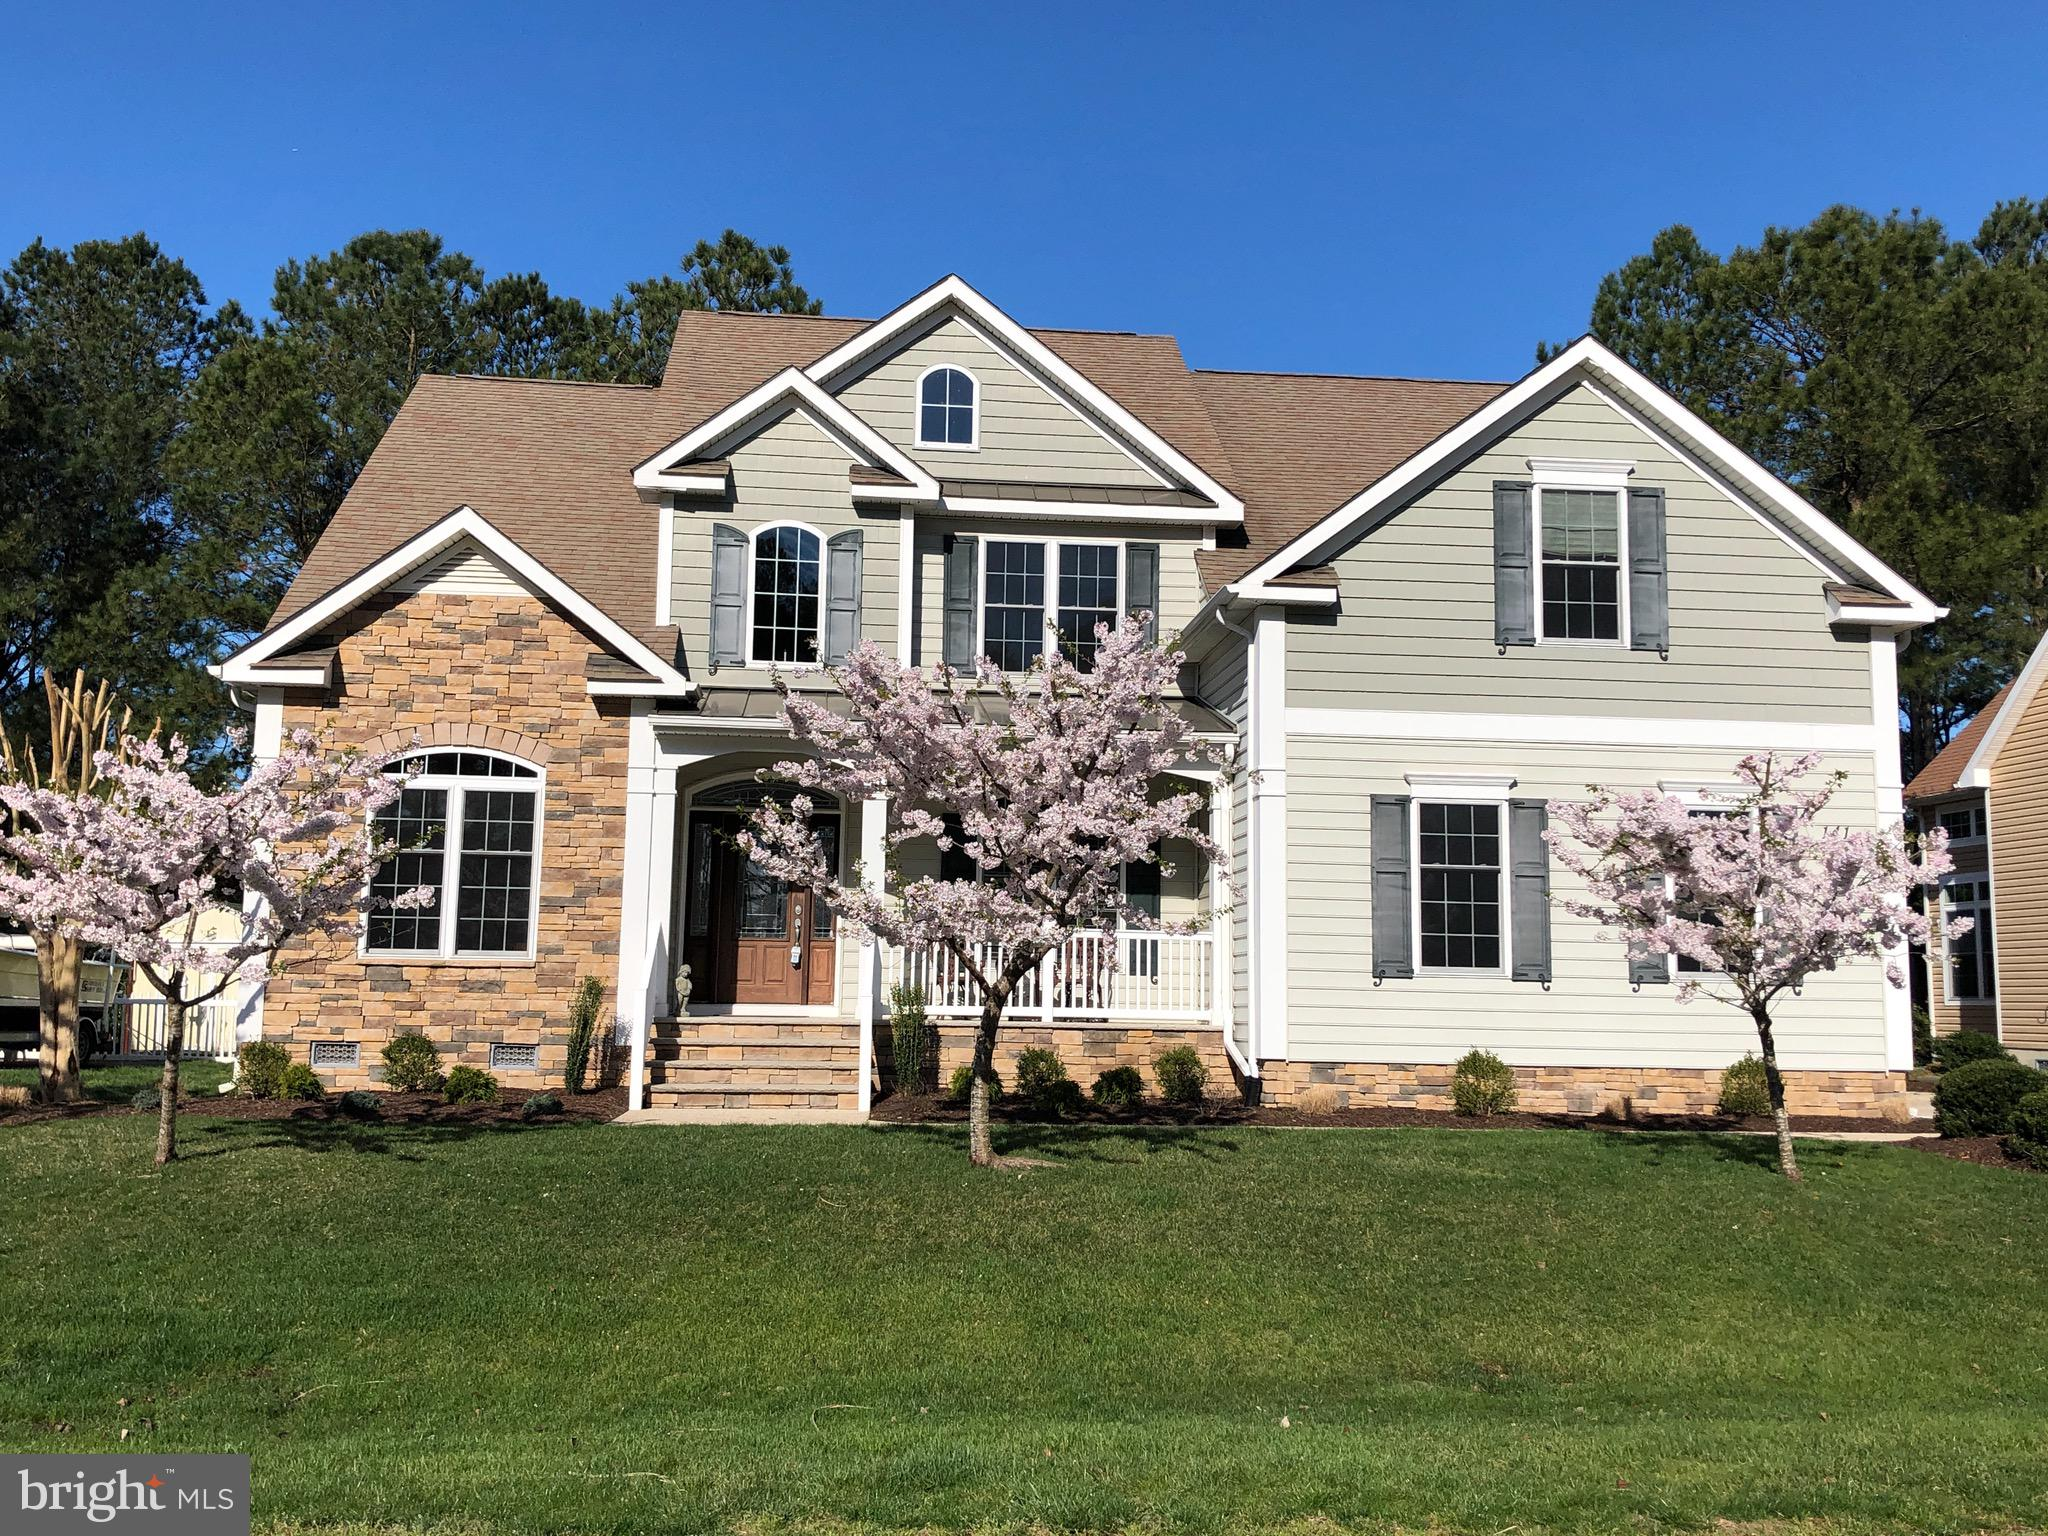 141 Pine Forest Dr, Ocean Pines, MD, 21811